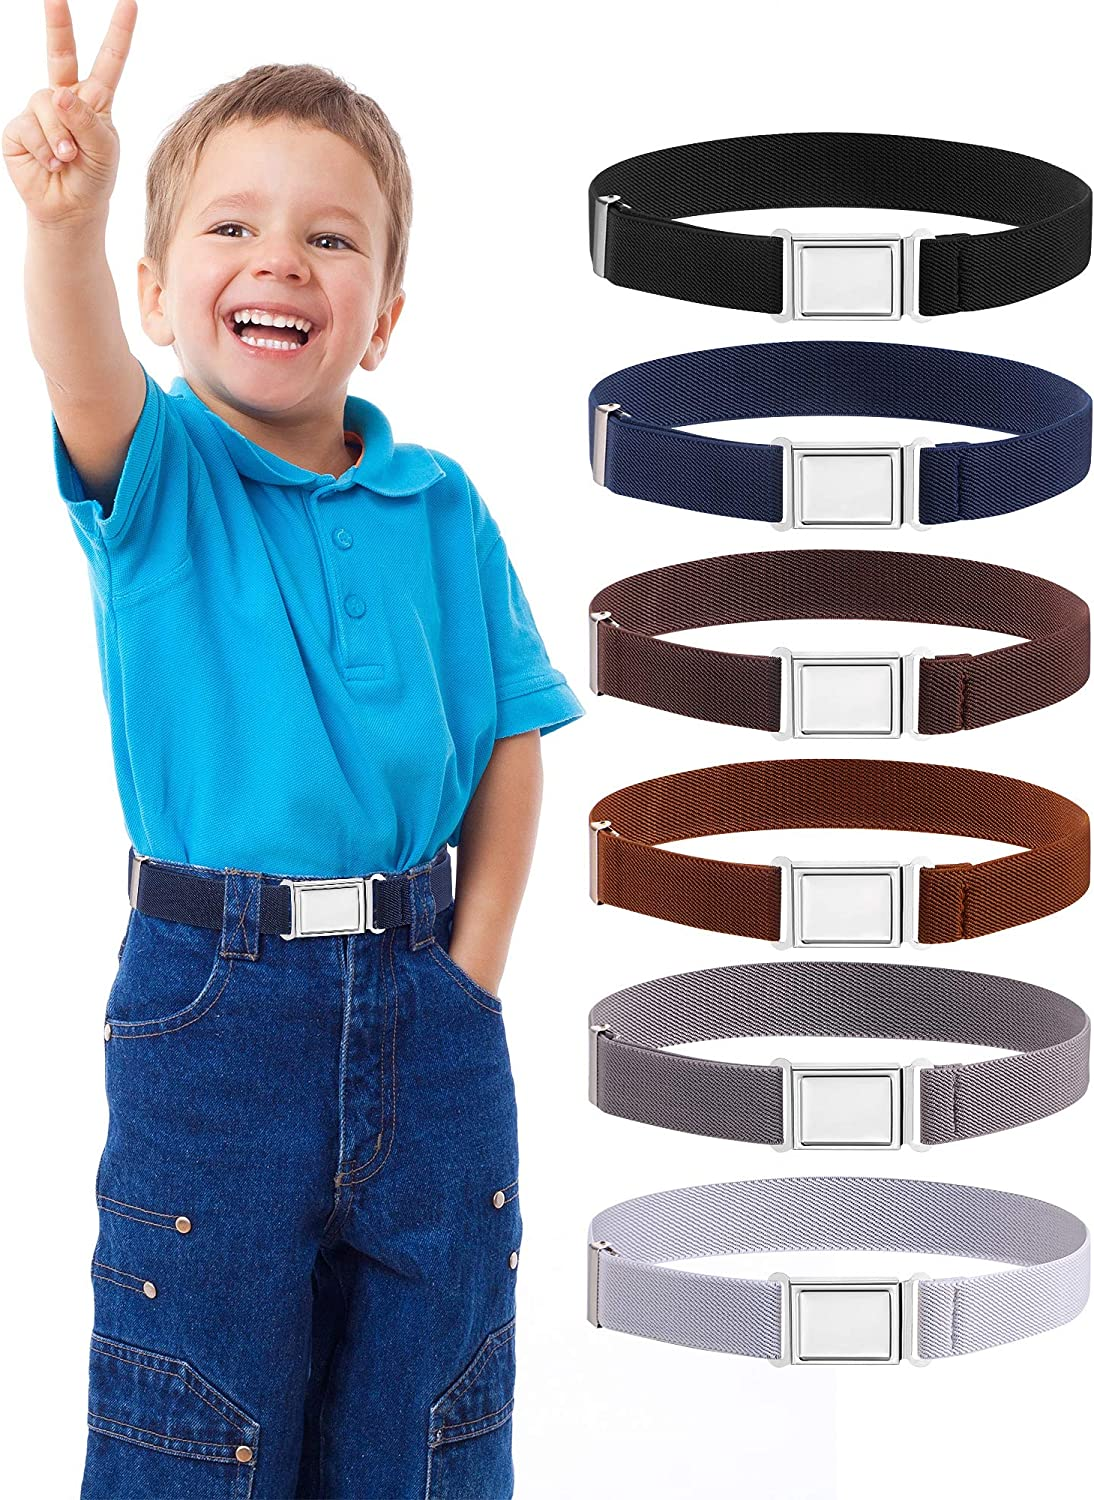 Kids Adjustable Magnetic Belt Elastic Stretch Belt with Easy Magnetic Buckle for Boys Girls, Multicolor, One Size